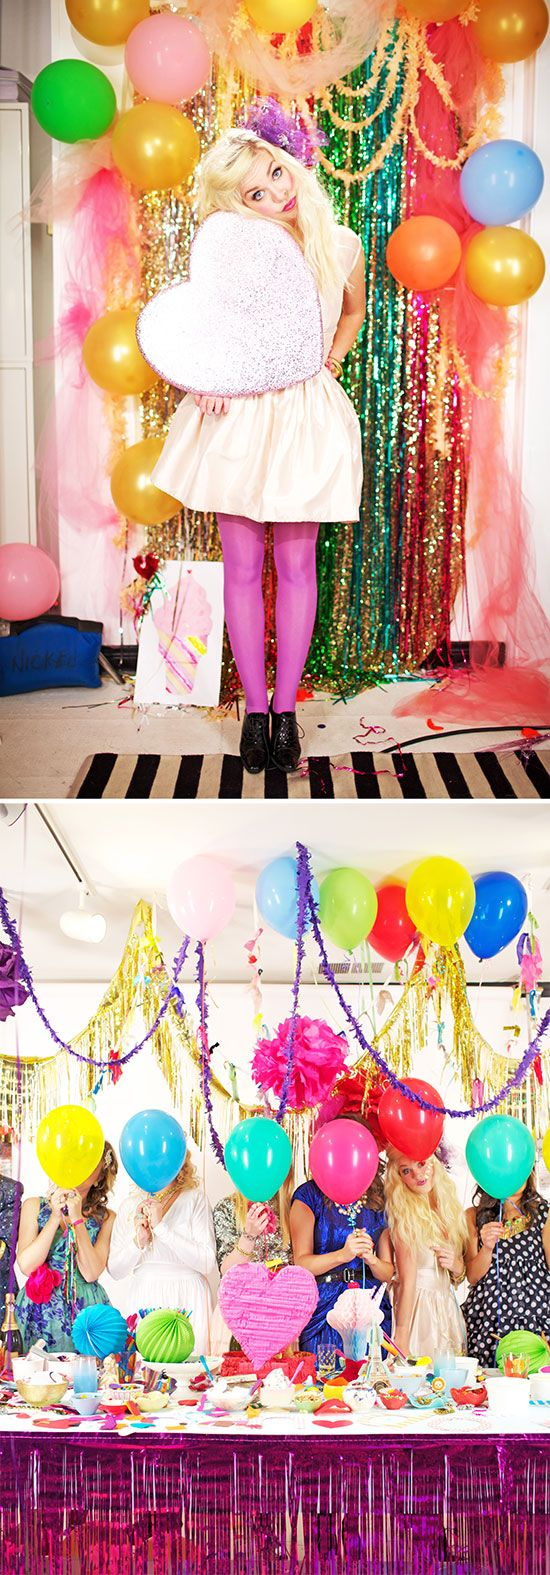 Fun party photo booth